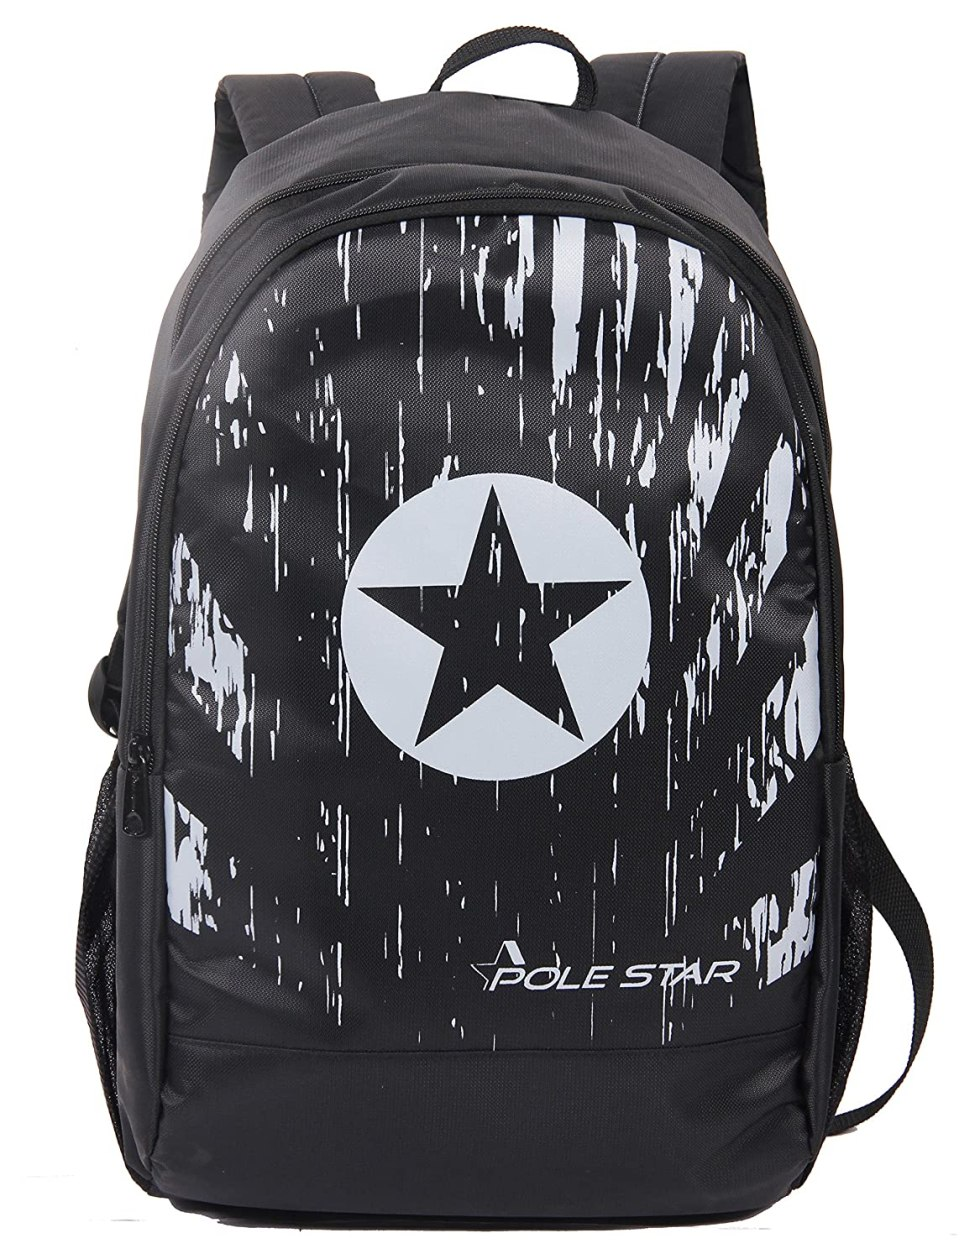 Amaze 30 LTR Black Casual/Travel Backpack with Laptop Compartment  under Polestar Travel Bag